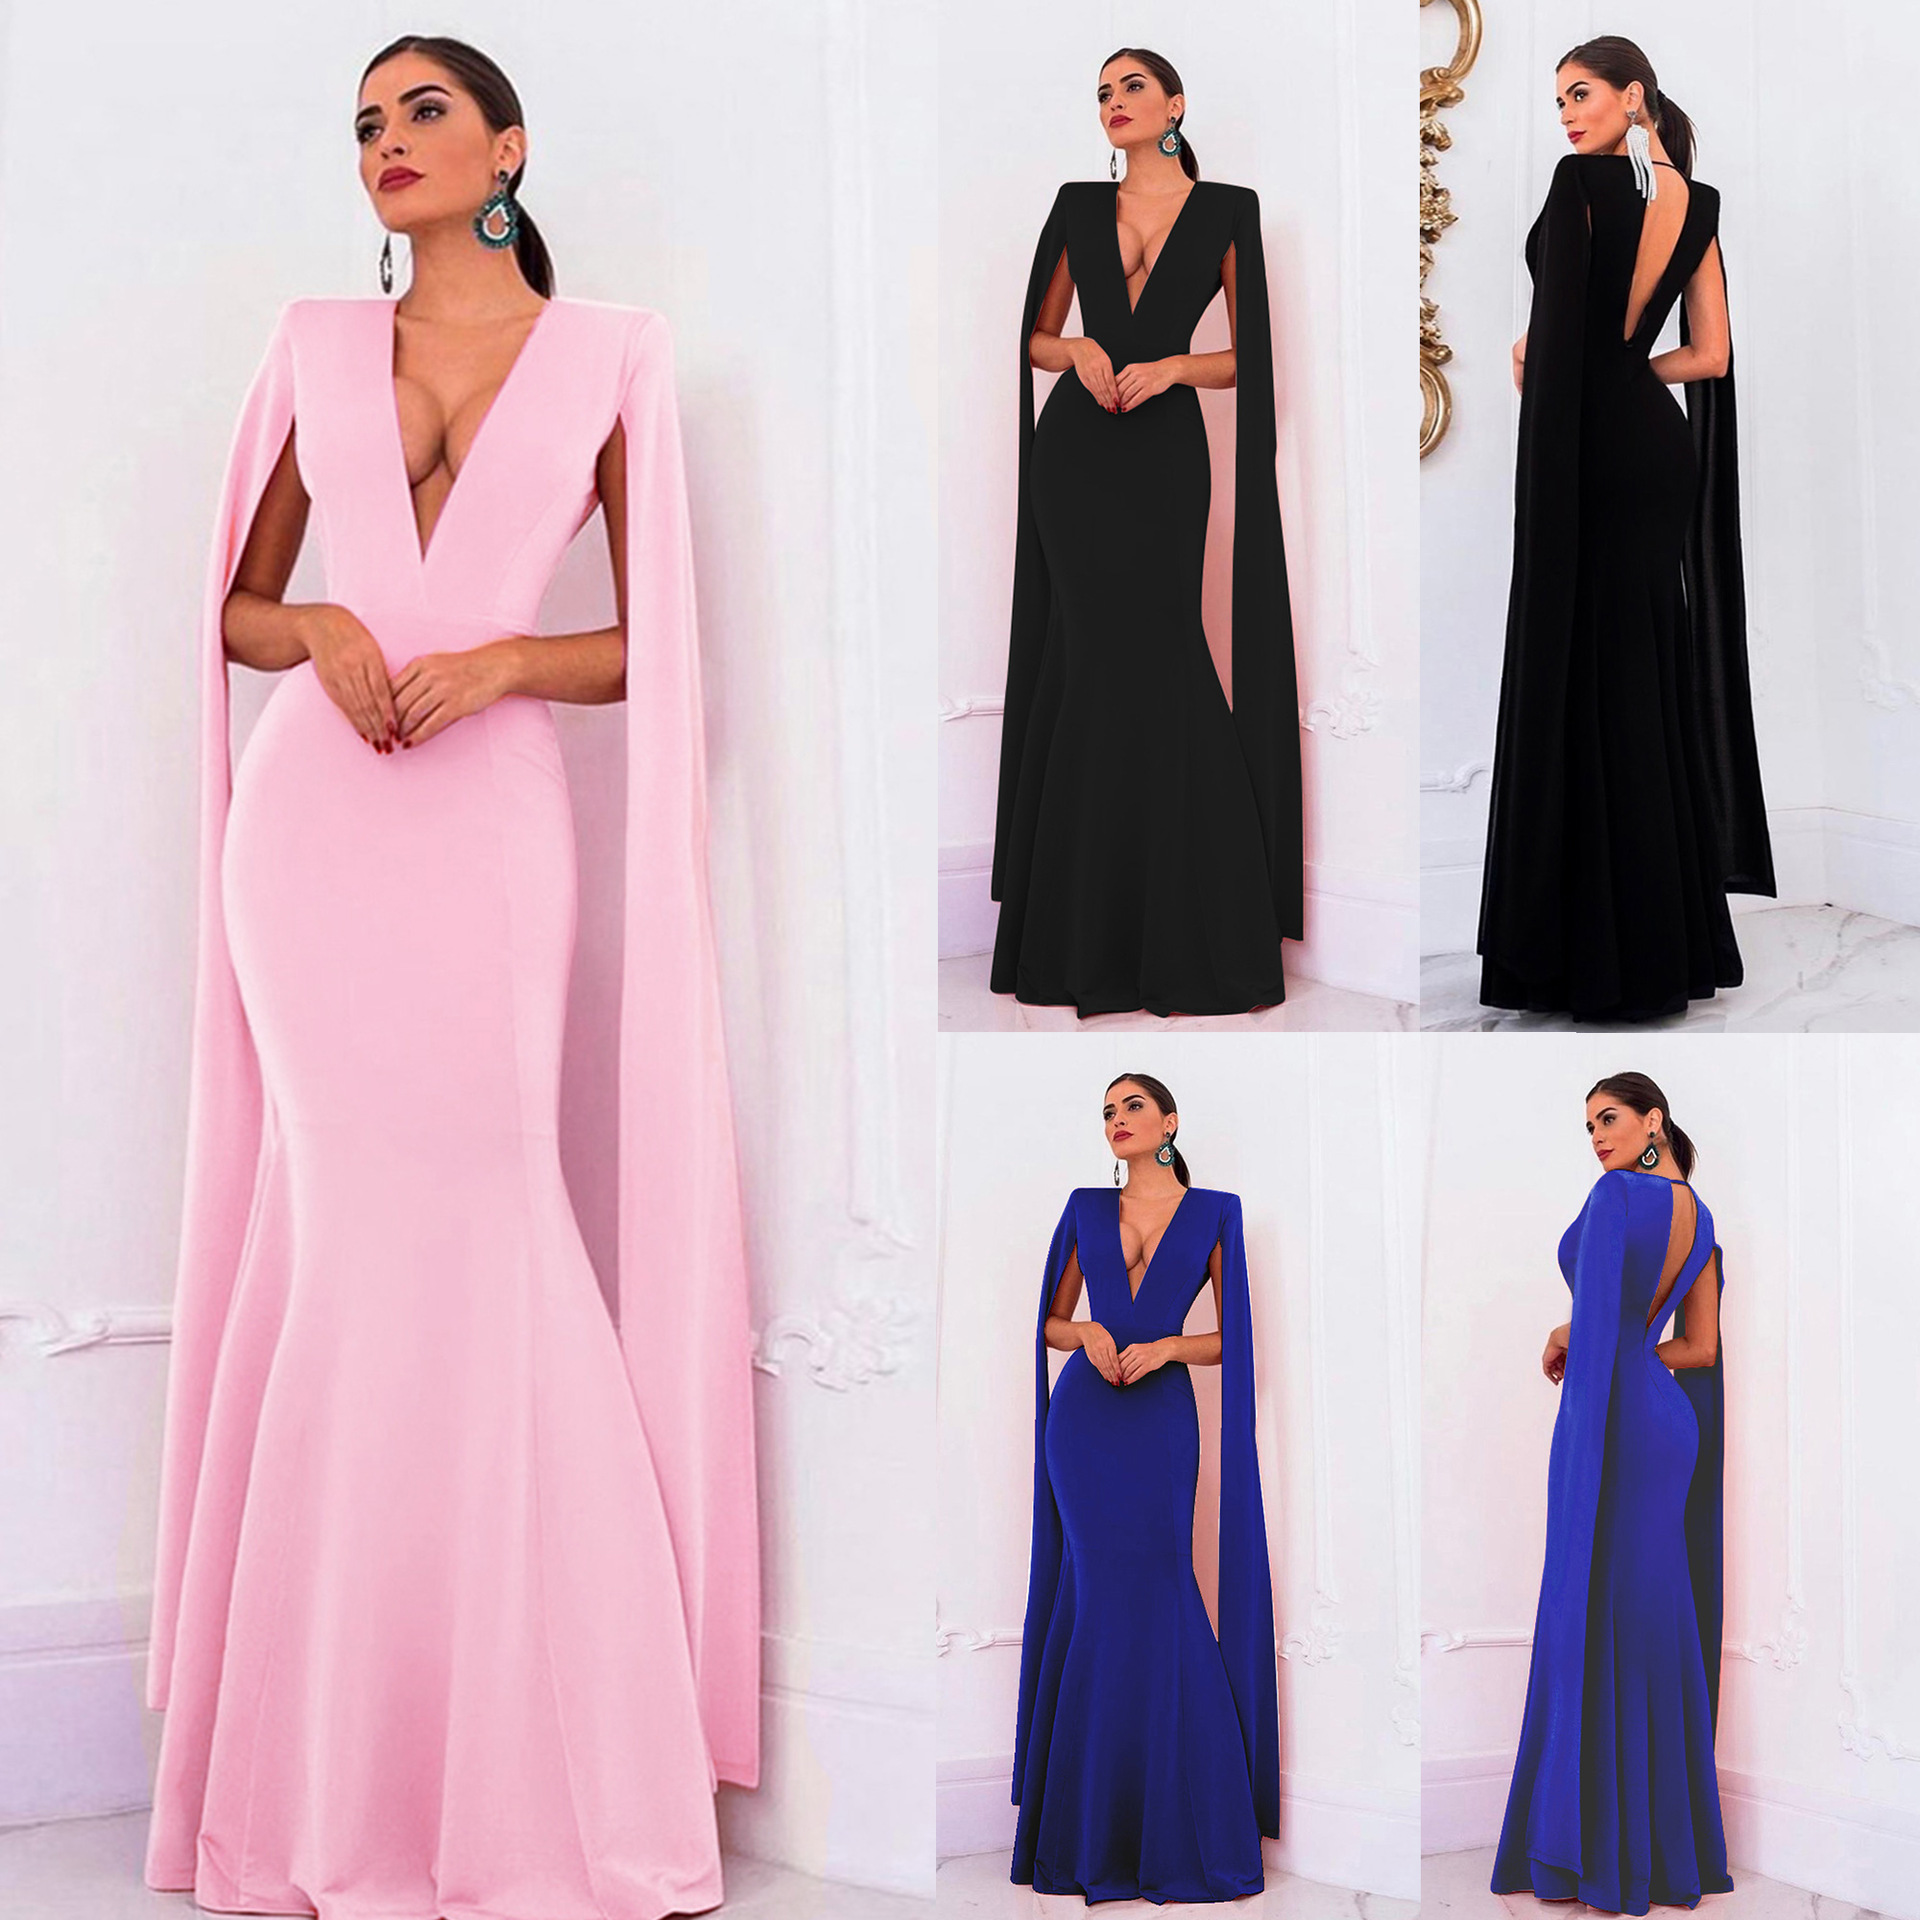 European Style Ladies Cold Shoulder Sexy Bodycon Fishtail Long Dress Mermaid V Neck Open Back With Shawl Slim Elegant Evening